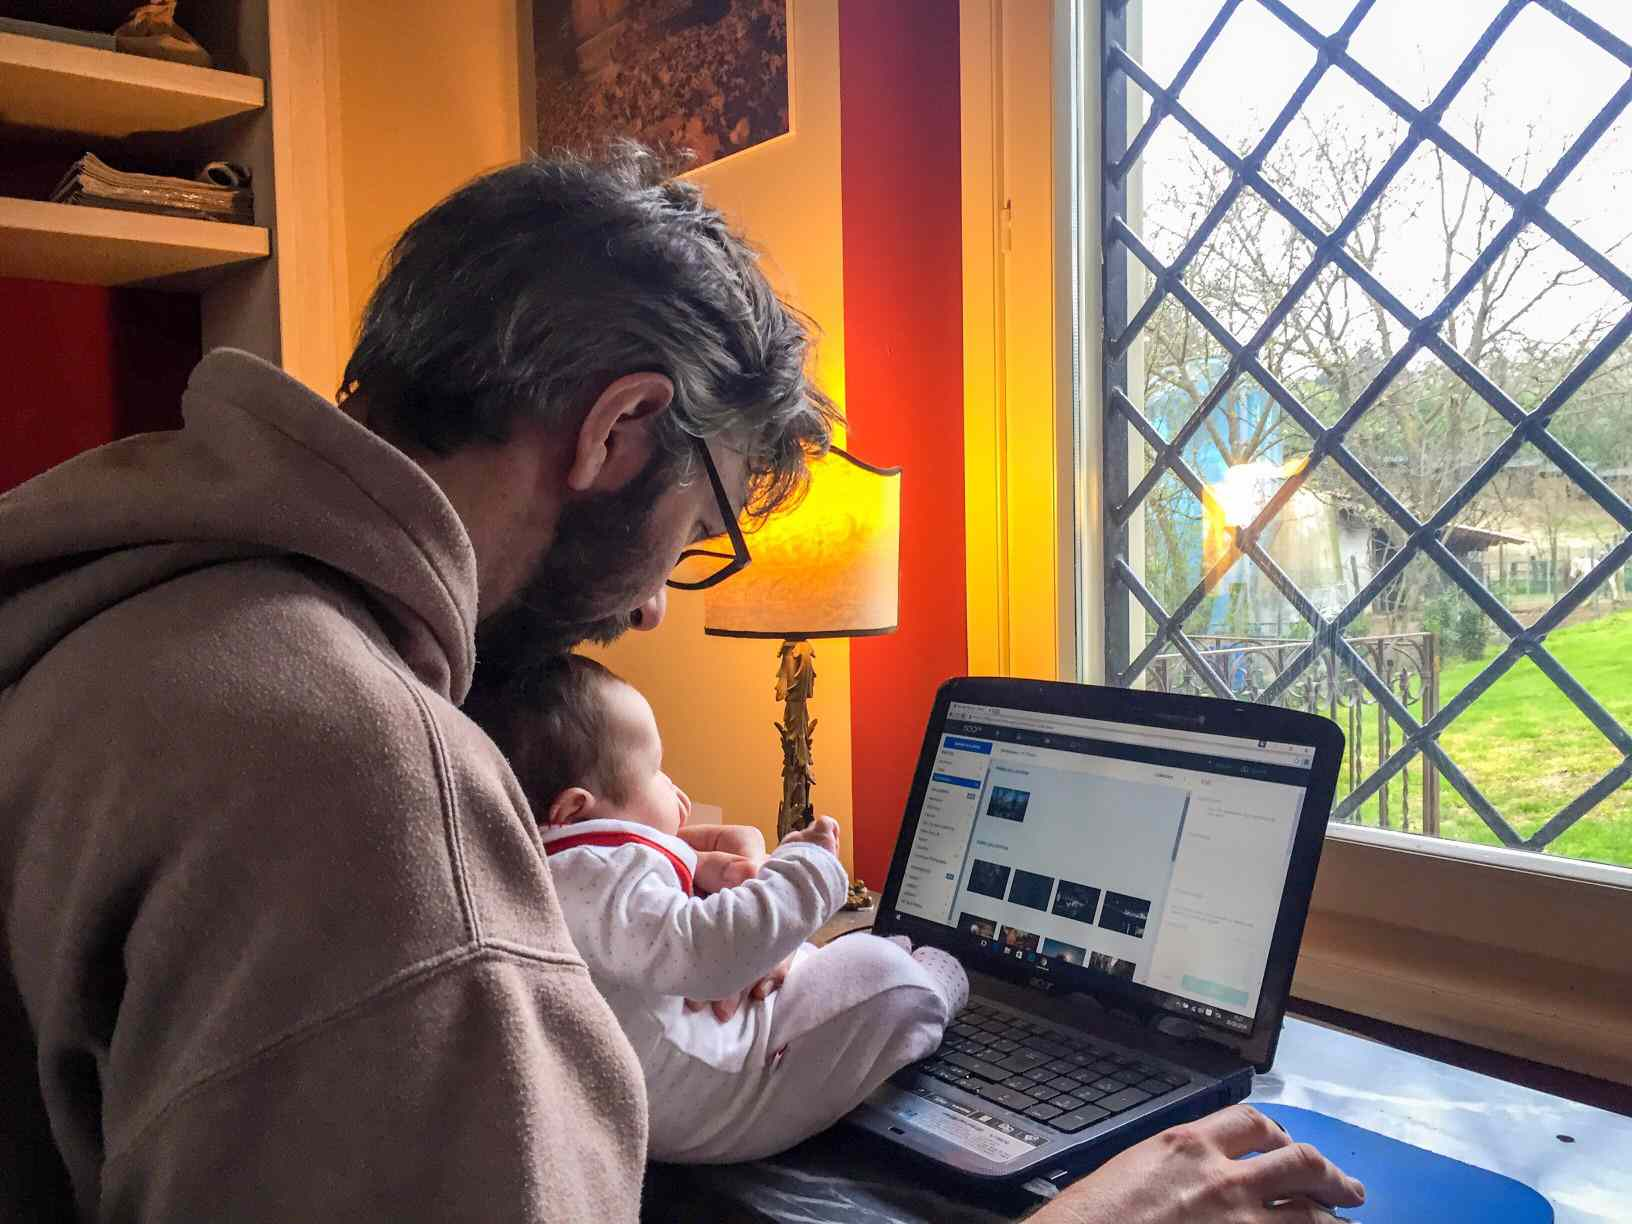 A man working on his laptop at home, holding his baby.